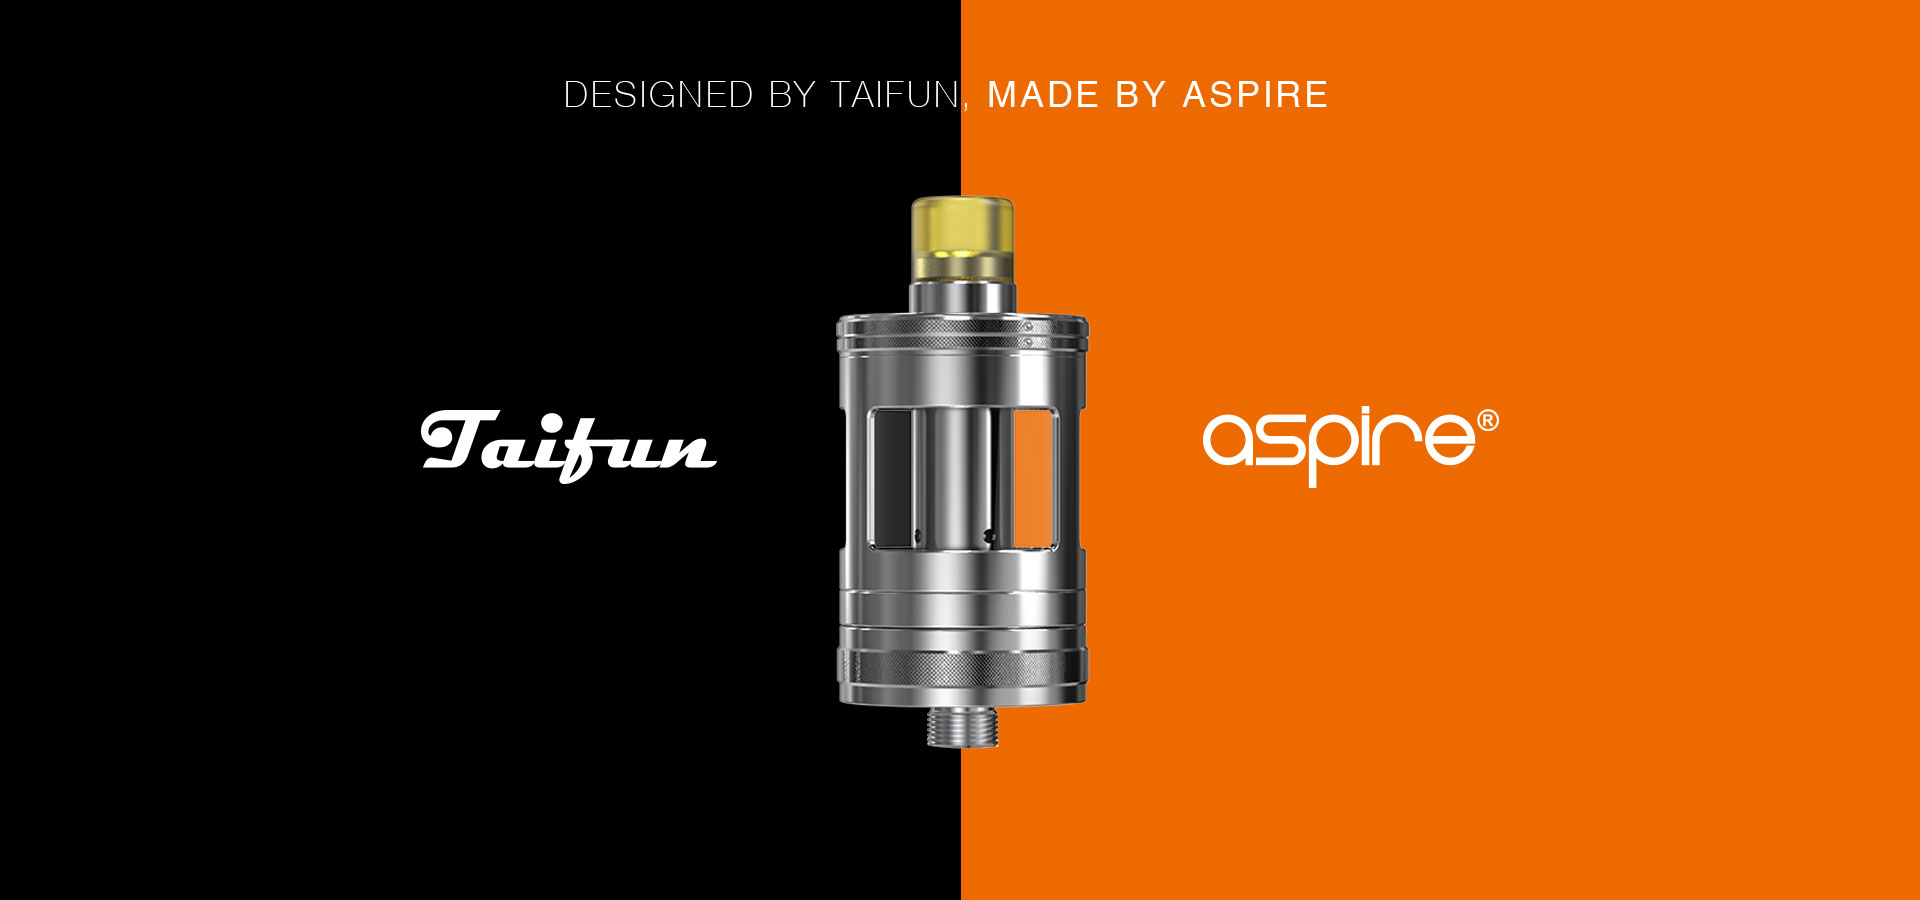 Aspire Nautilus GT Designed By Taifun